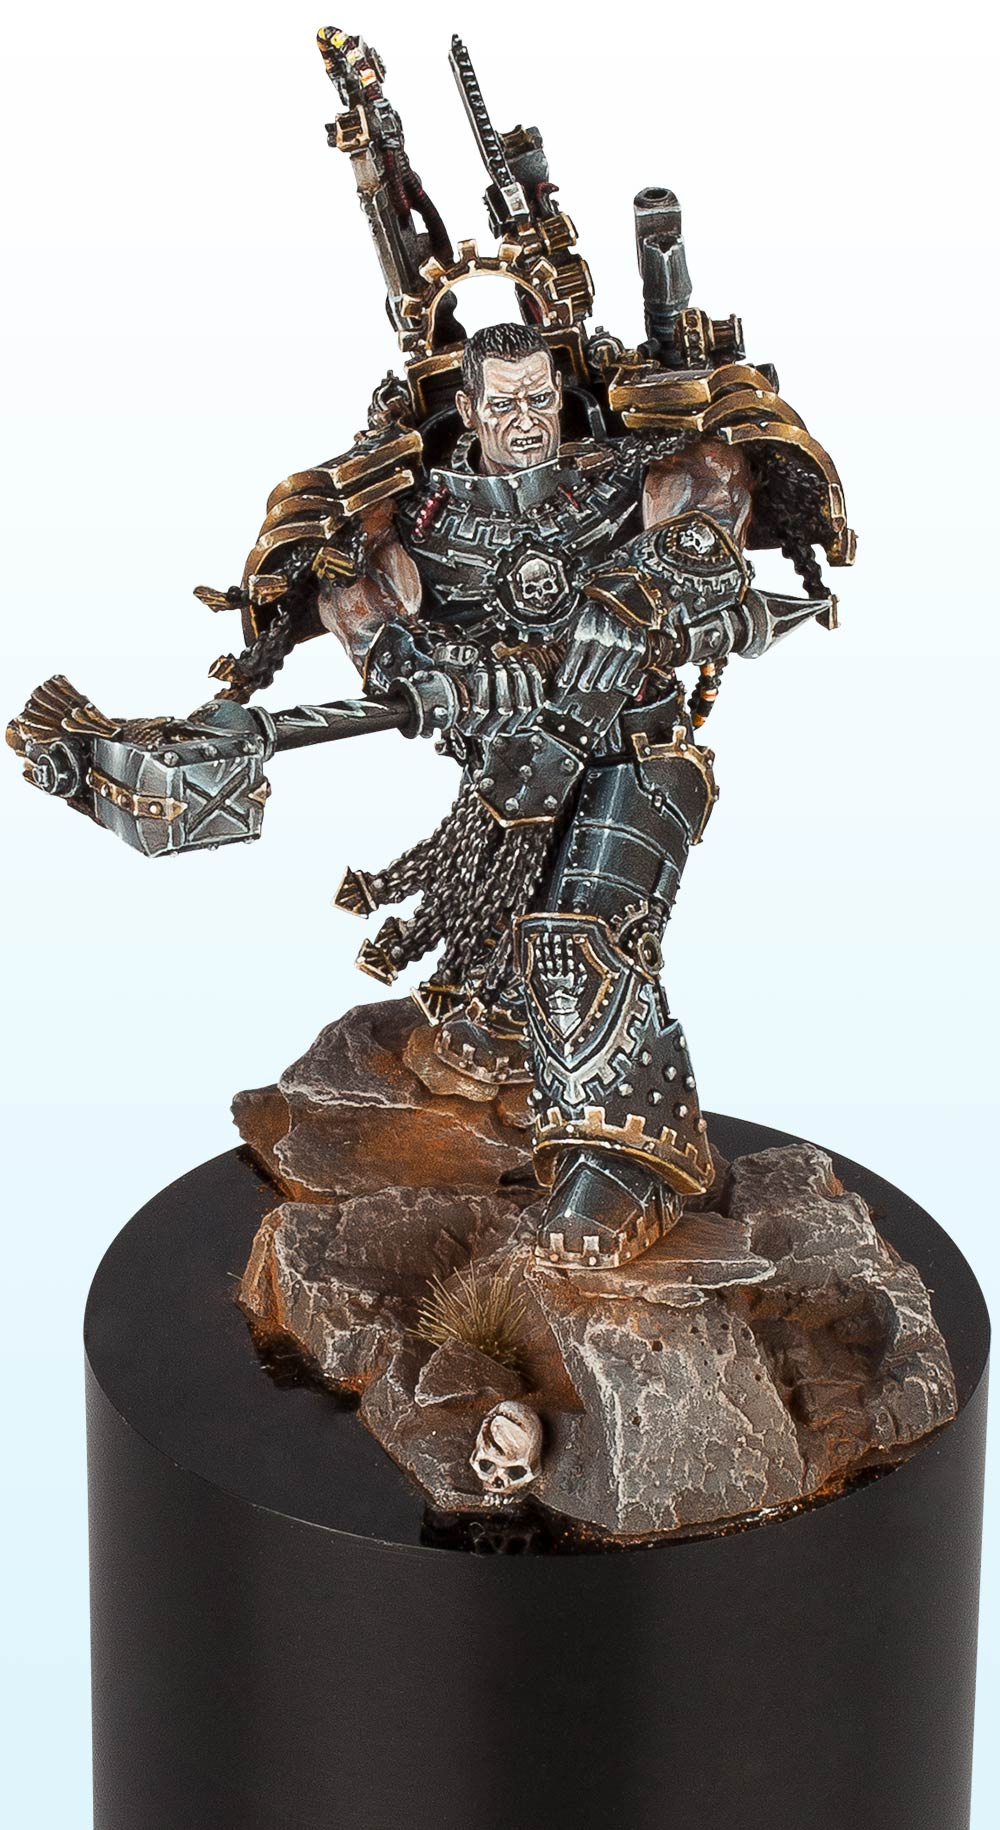 Warhammer 40,000 Large Model: Gold – 2014